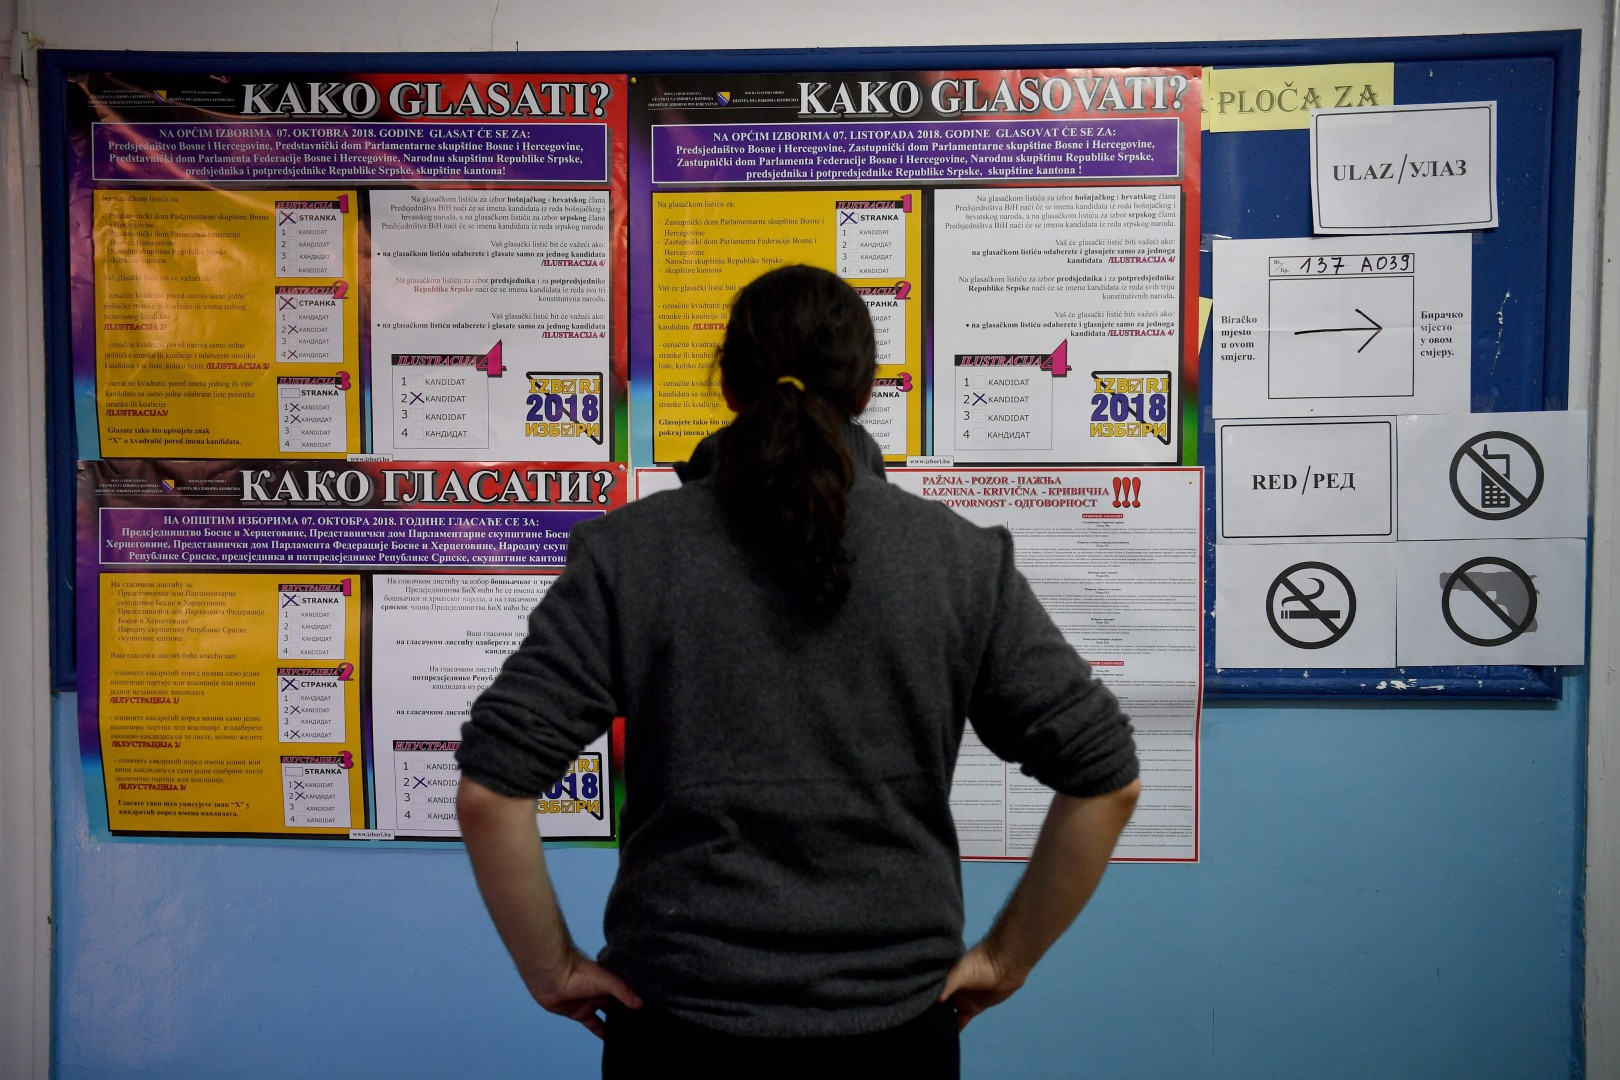 TOPSHOT - A Bosnian looks at the instructions on how to cast a ballot at a polling station in Sarajevo on October 7, 2018. - Bosnians headed to the polls to elect leaders who will steer the future of a poor nation shackled by the communal divides that fuelled its brutal war more than two decades ago. While the list of woes facing the country is long, many Bosnians say they have lost faith in a corrupt political class that clings to power by inflaming nationalism that threatens to pull the country apart. (Photo by ANDREJ ISAKOVIC / AFP)